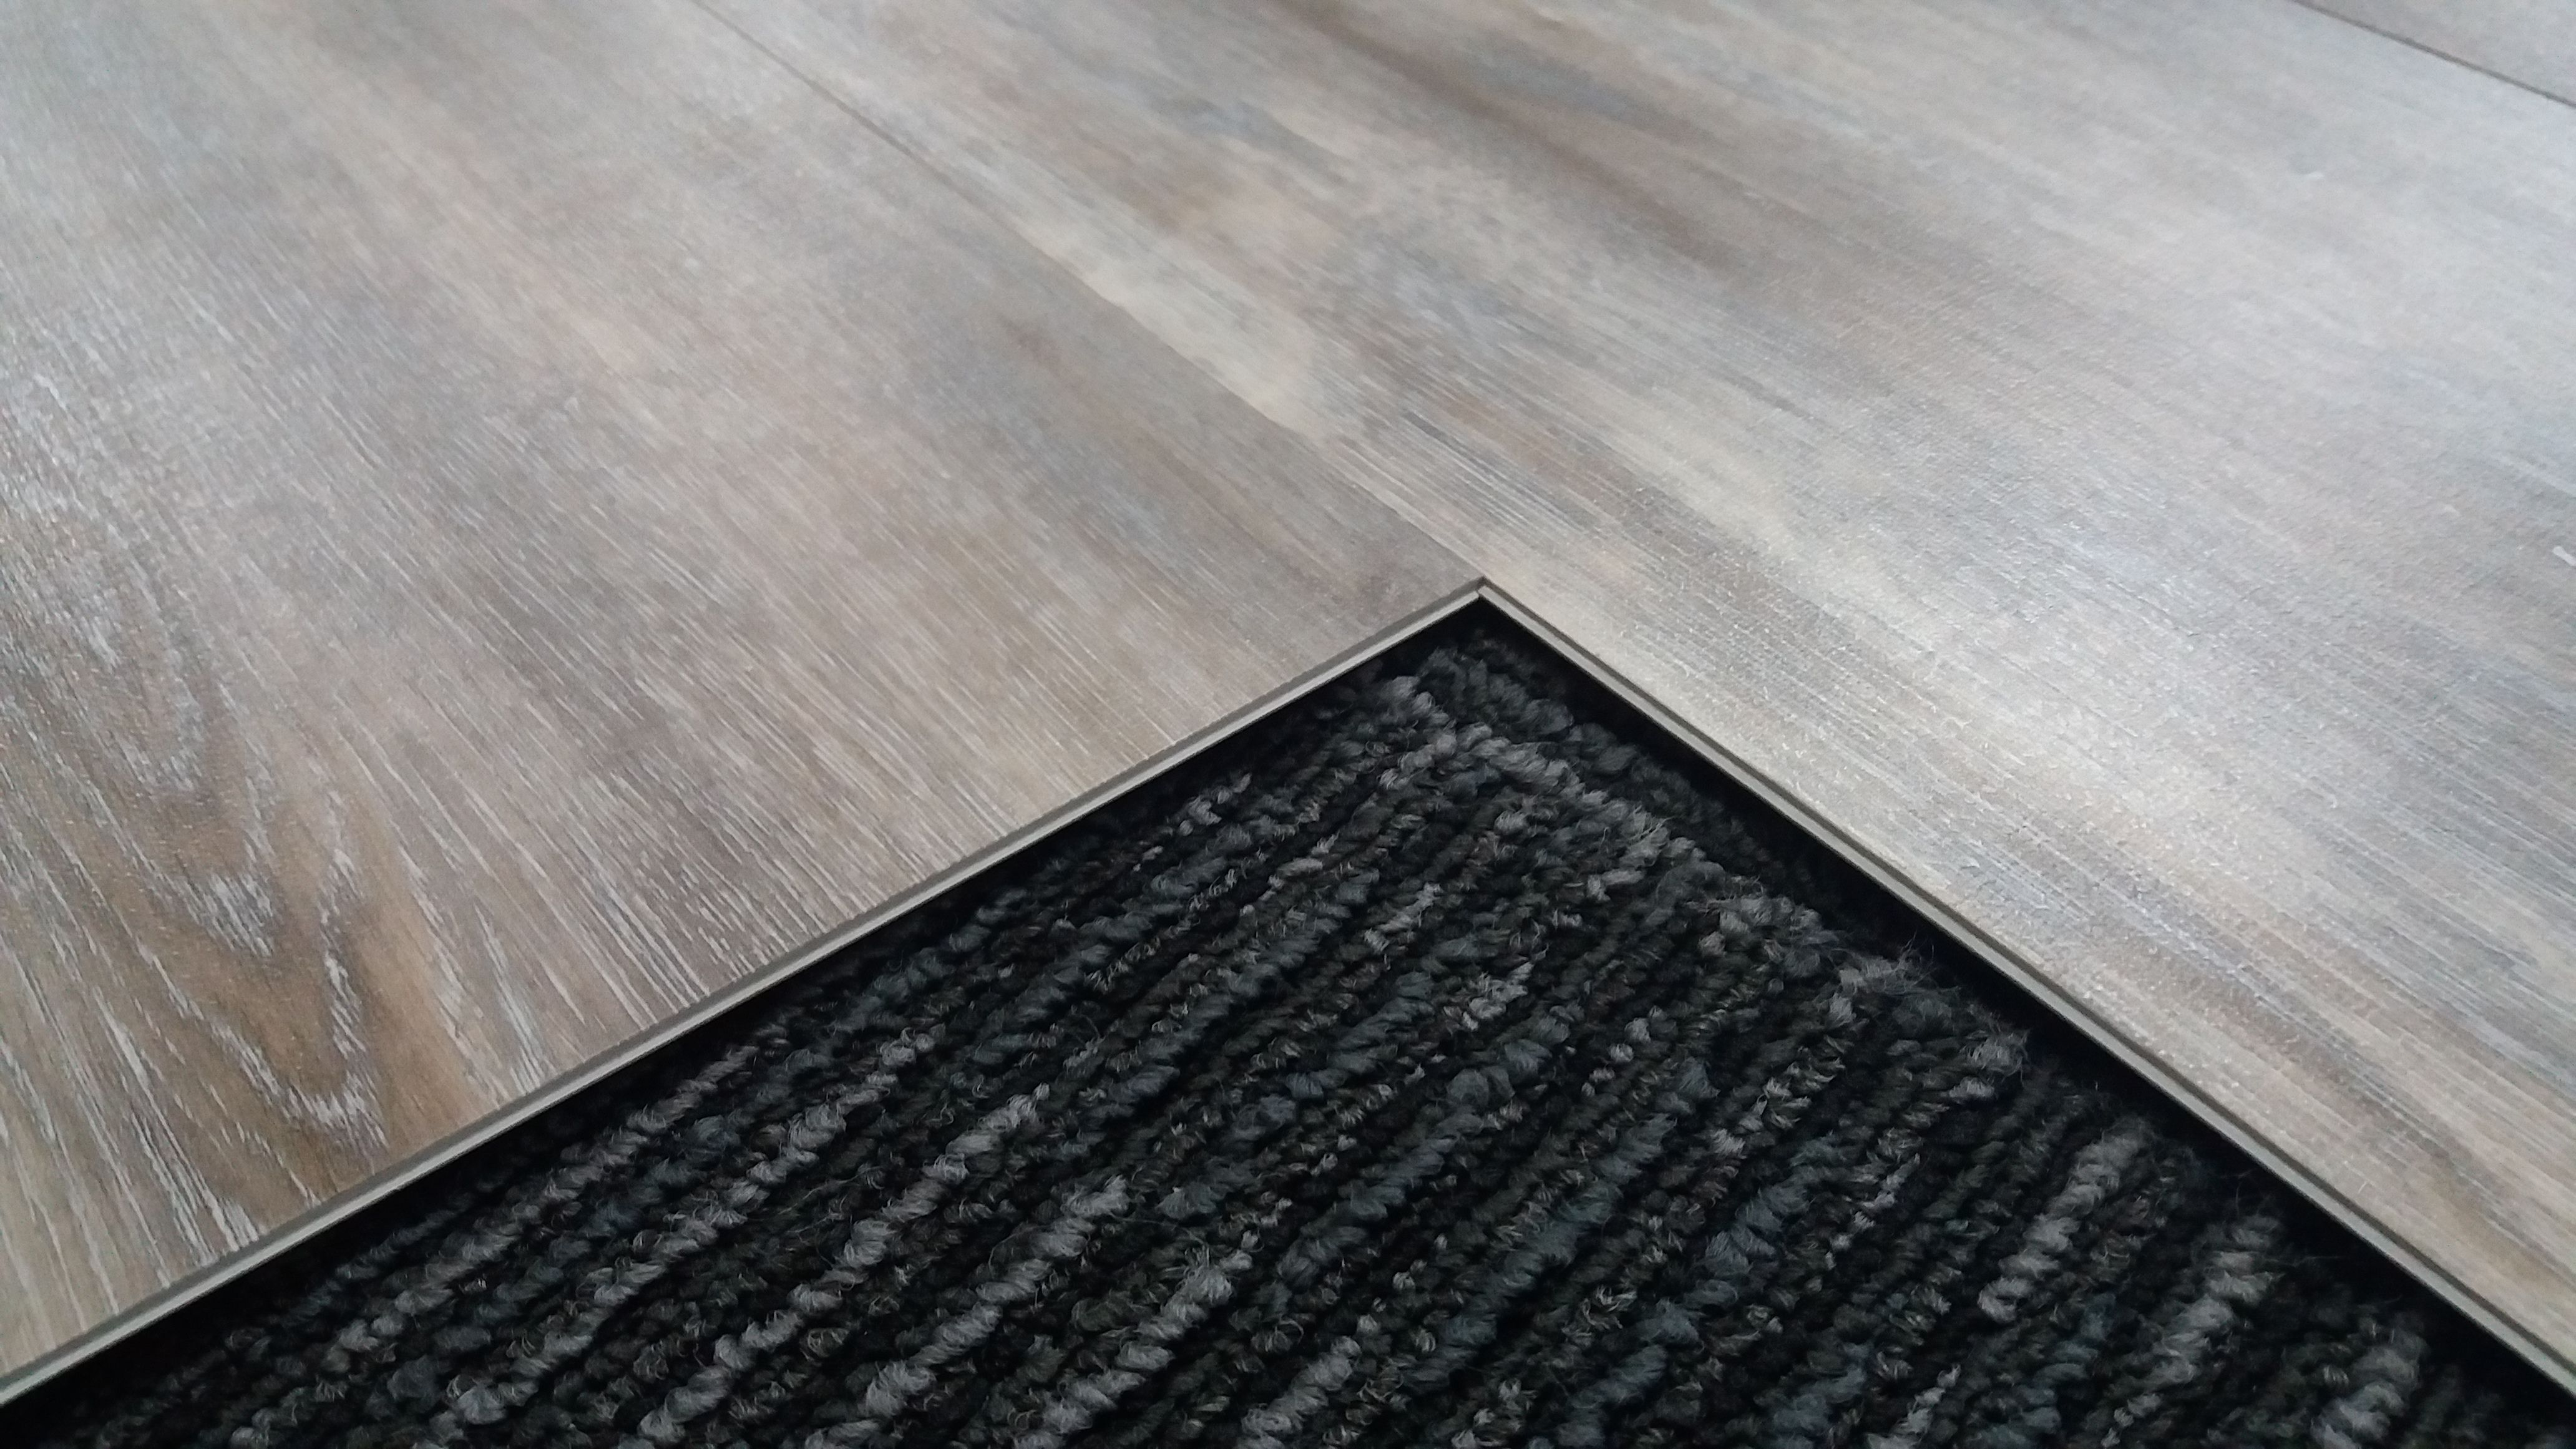 Spc Flooring Stands For Stone Plastic Composite And